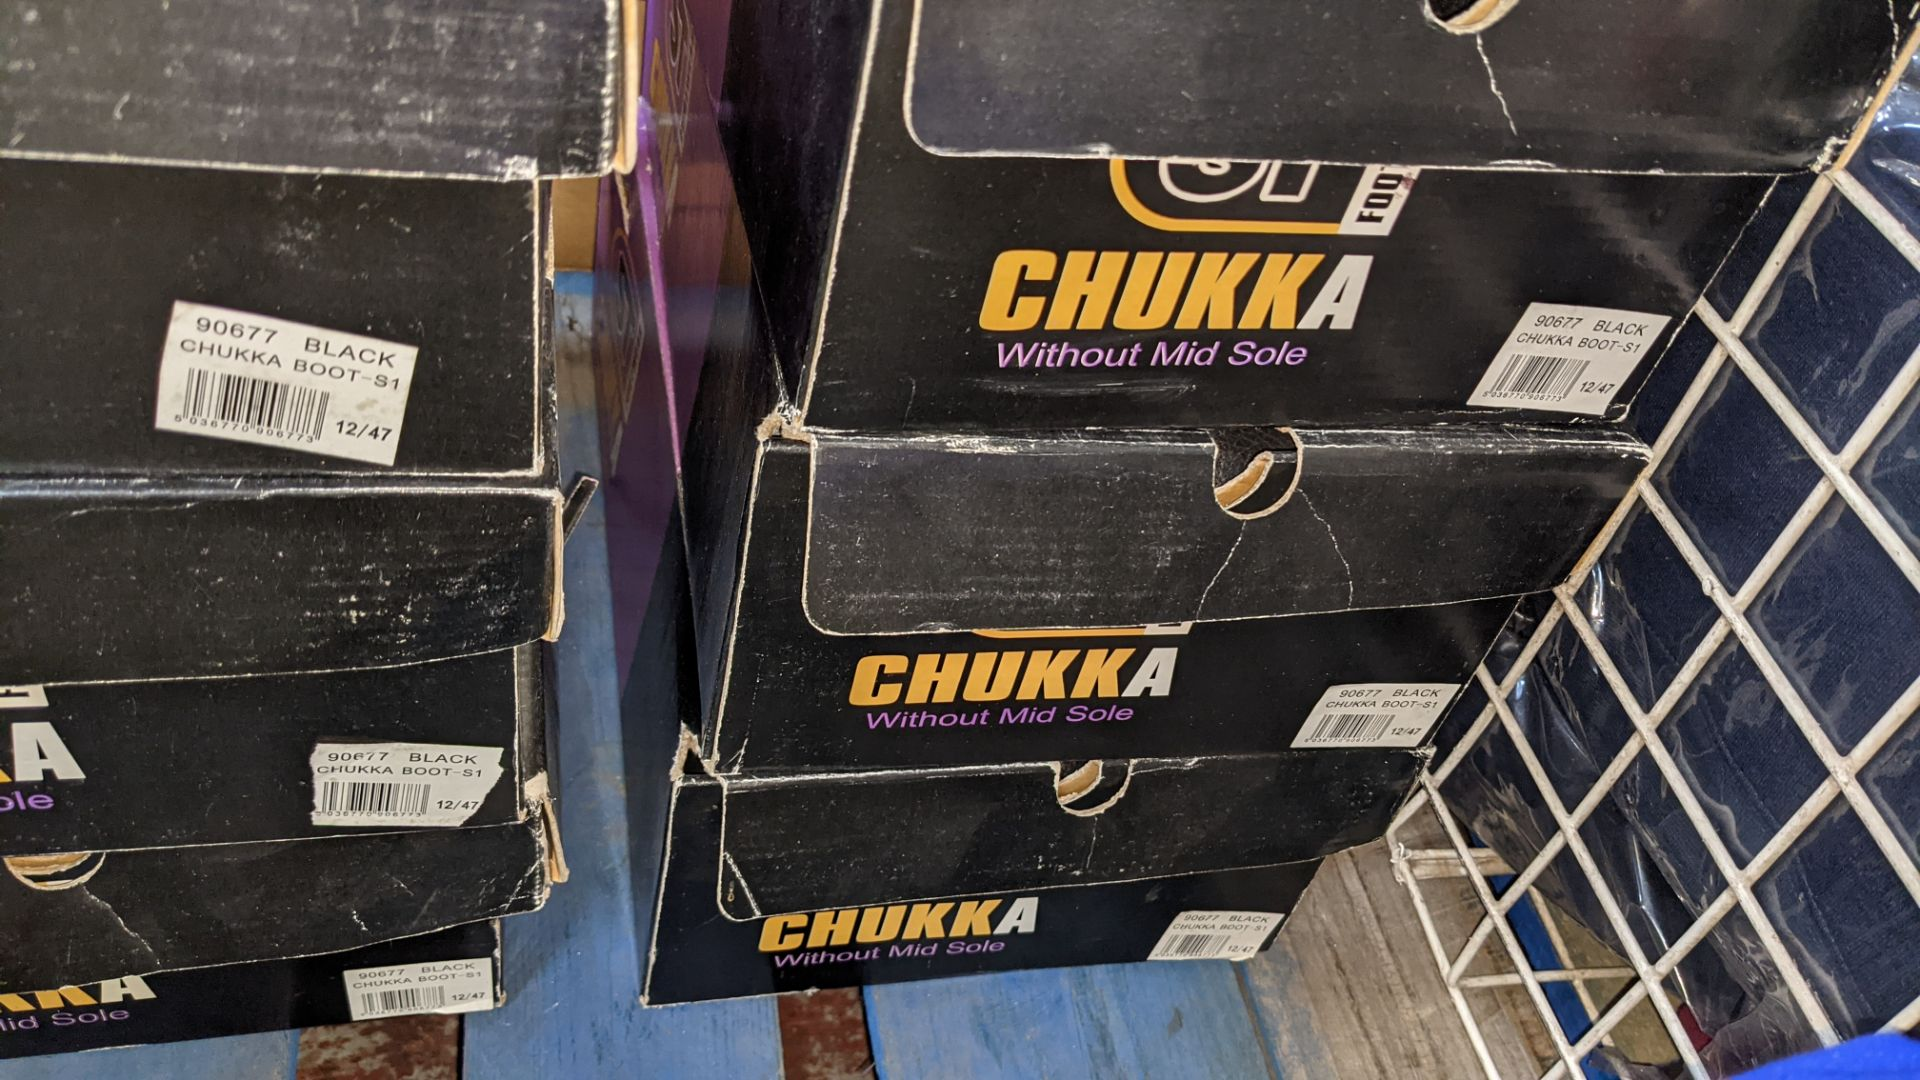 6 pairs of Chukka protective work boots - Image 6 of 6